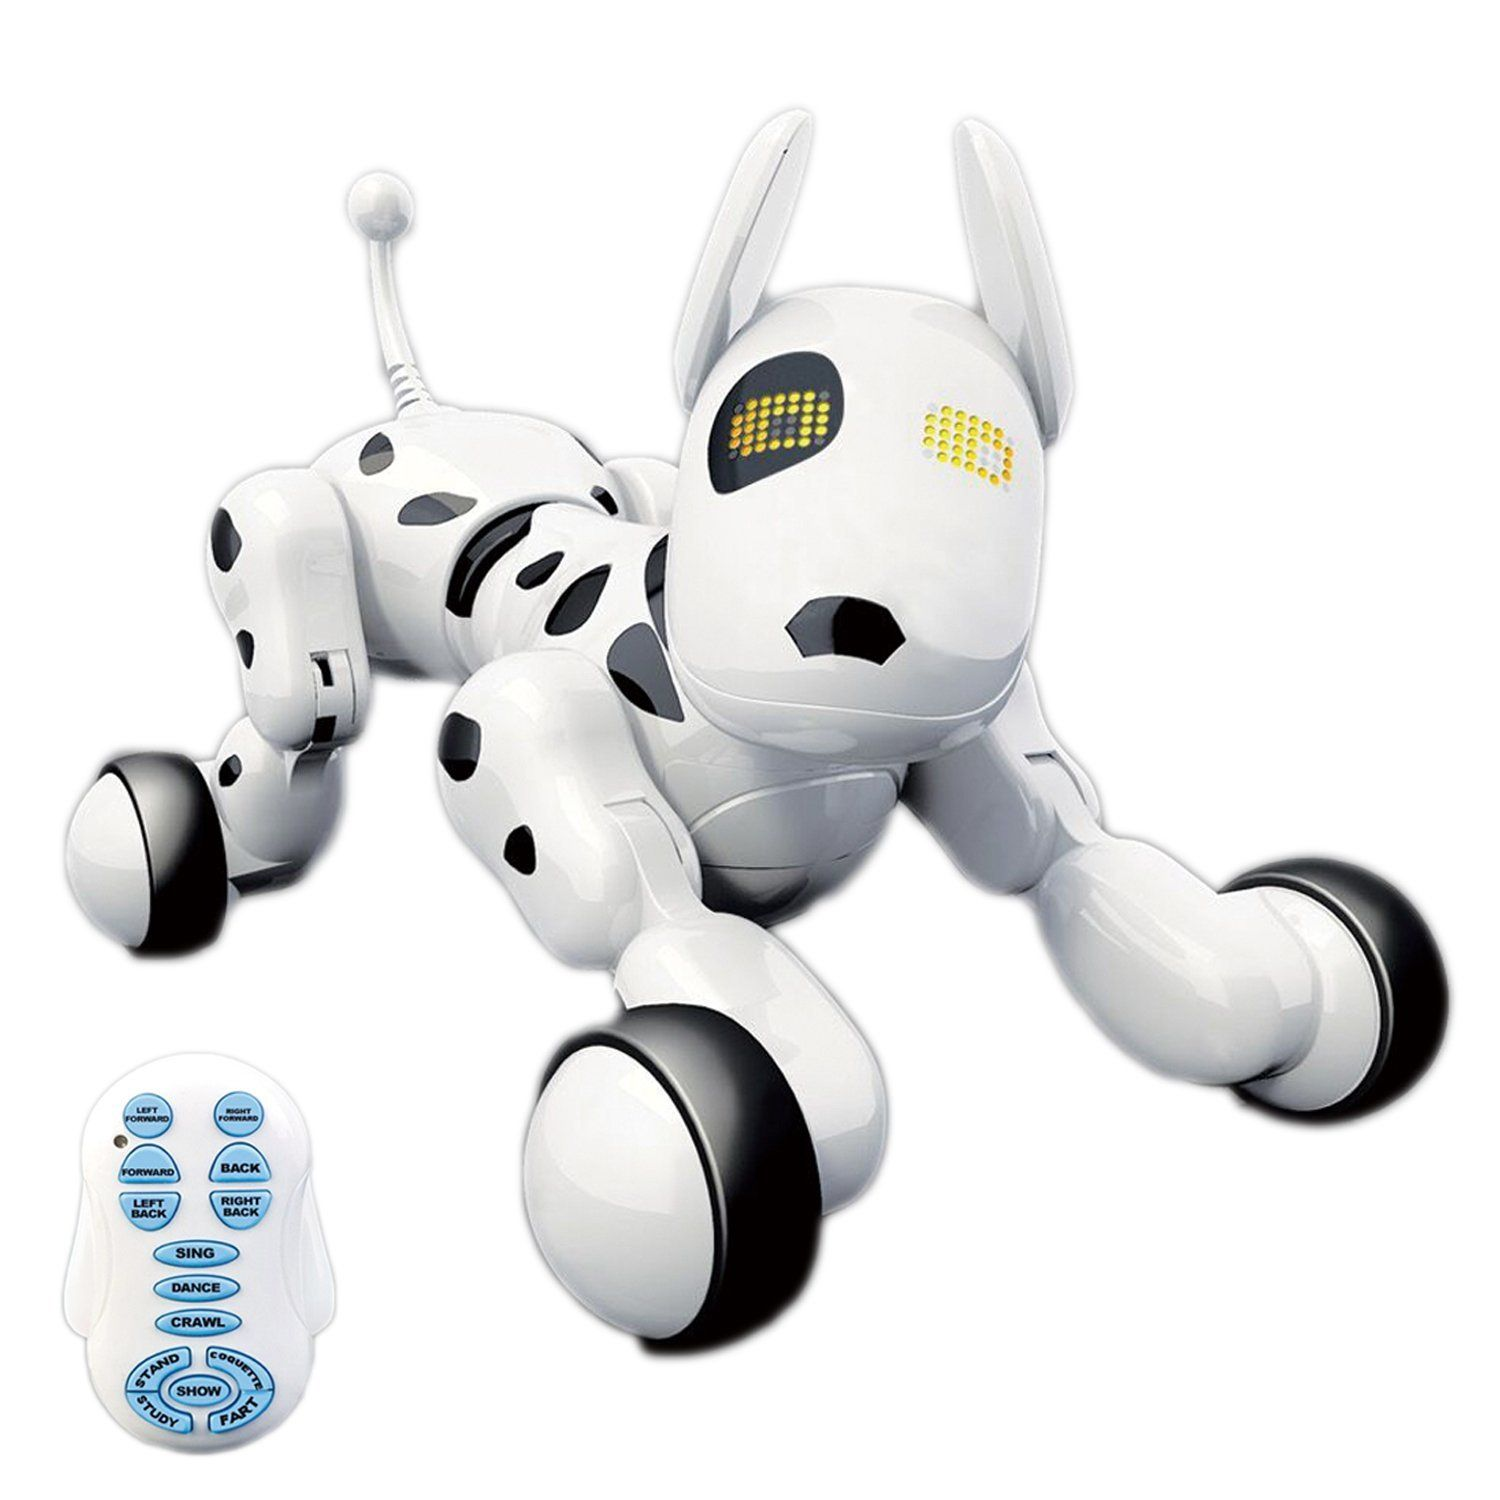 Robot Dog Remote Control Robot Brand Haite View It On Amazon Com